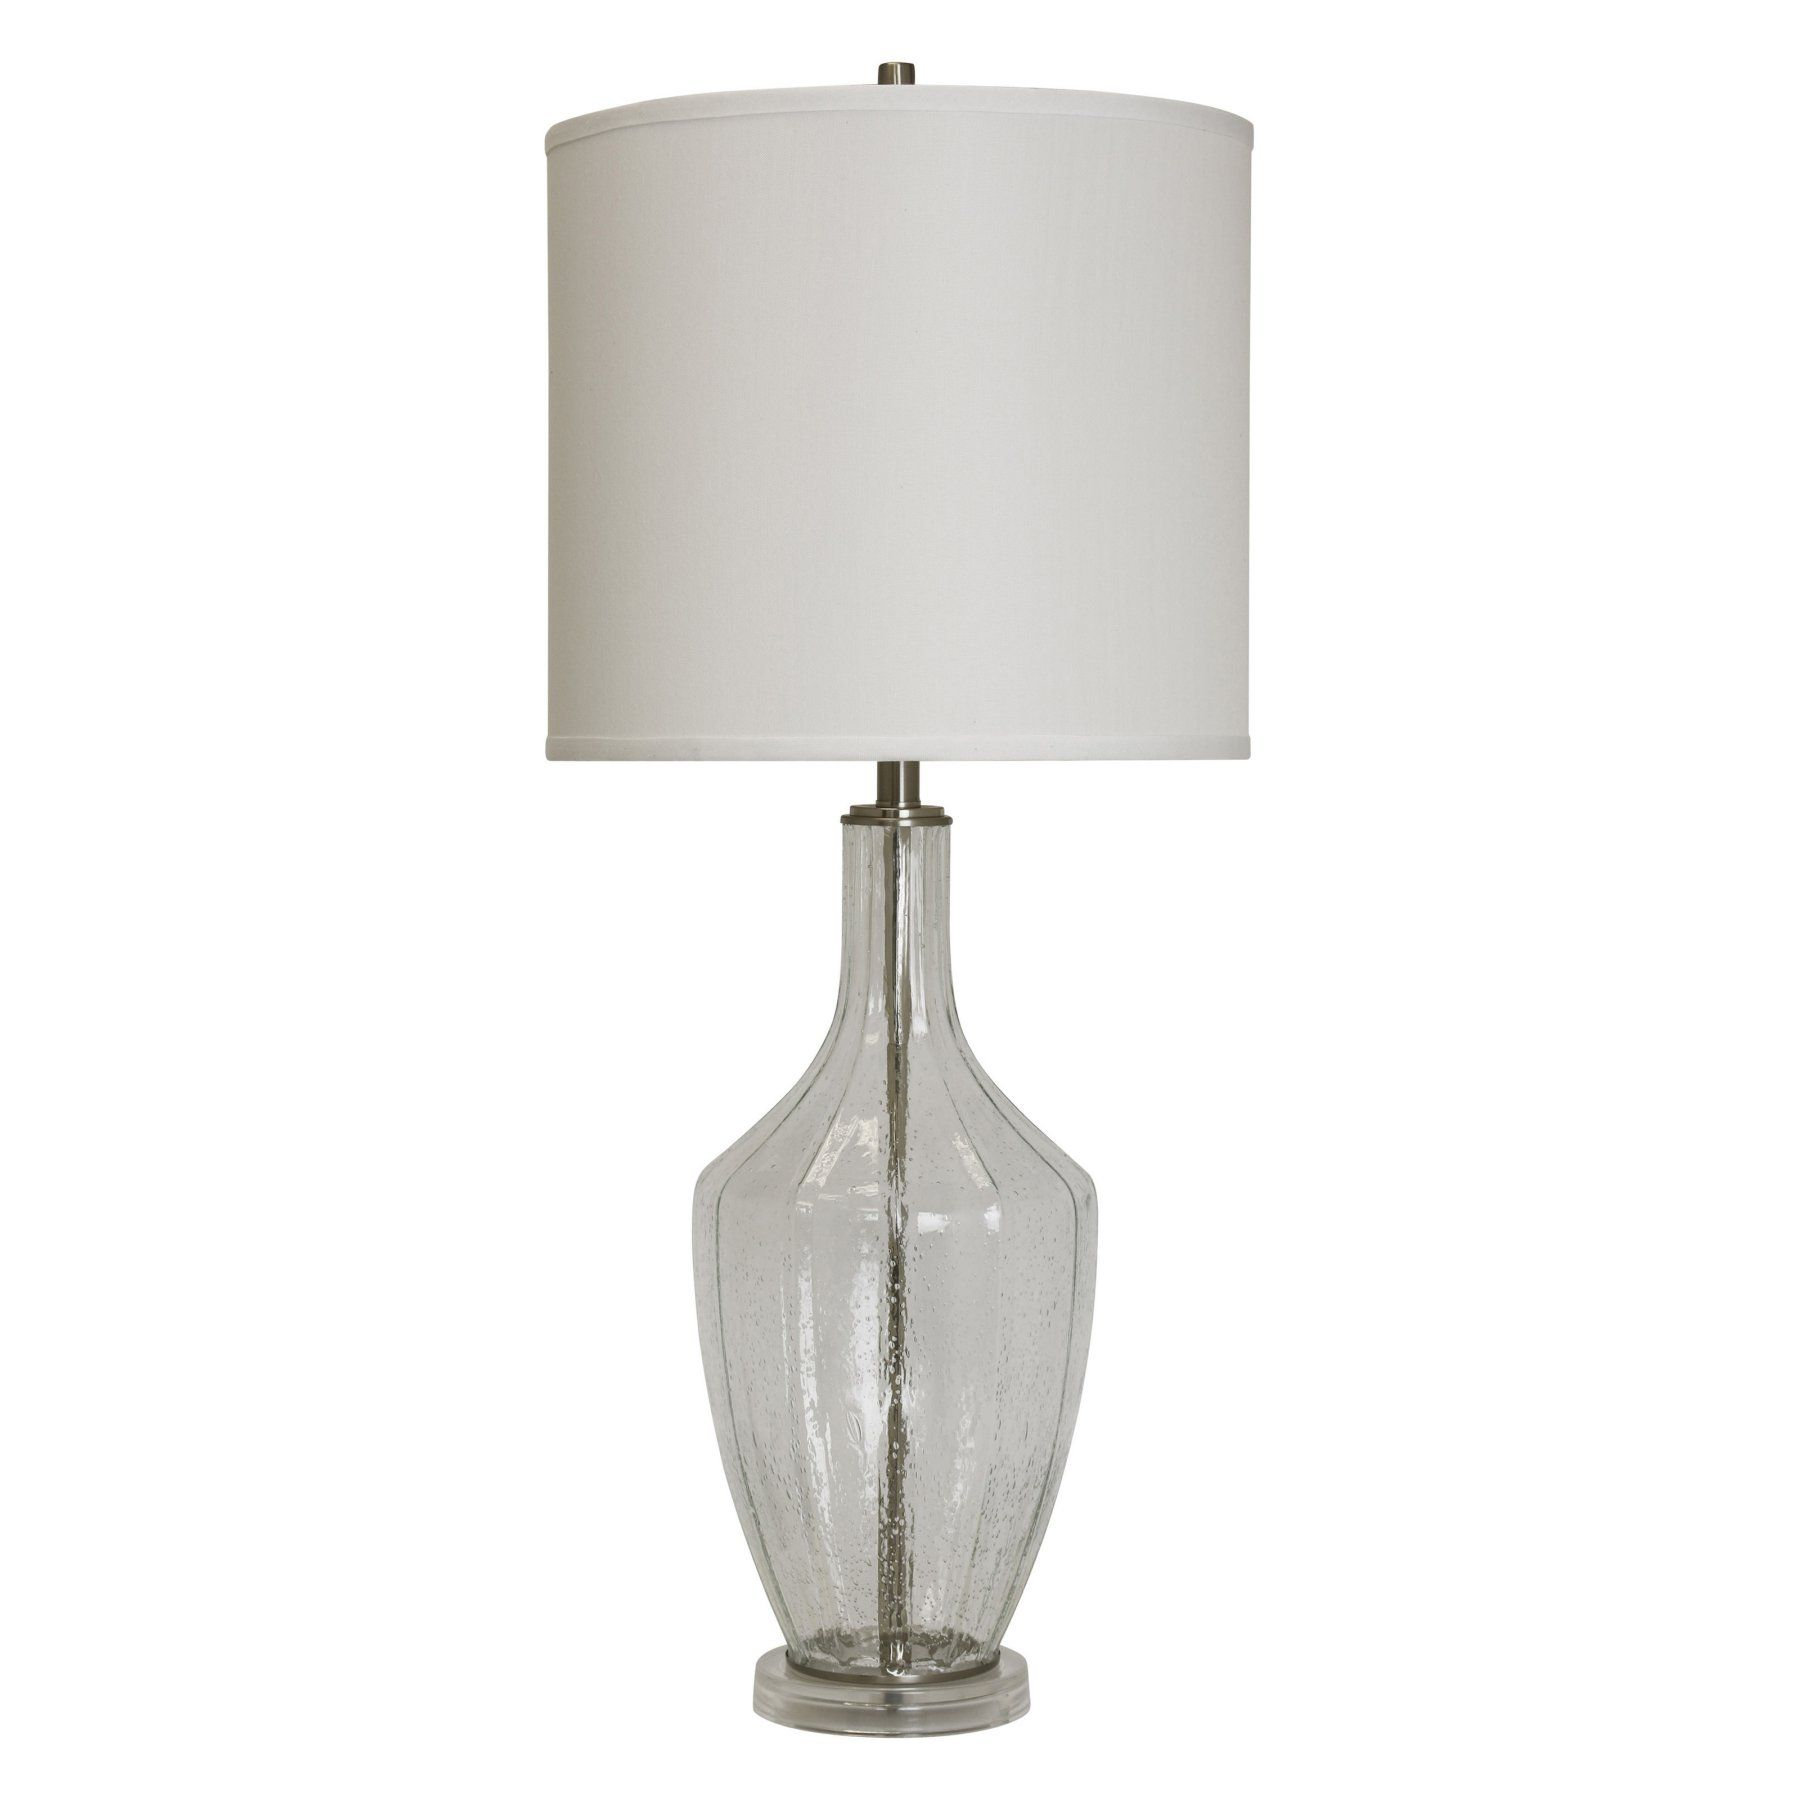 Style Craft Northbay L311601 Table Lamp  L311601Ds